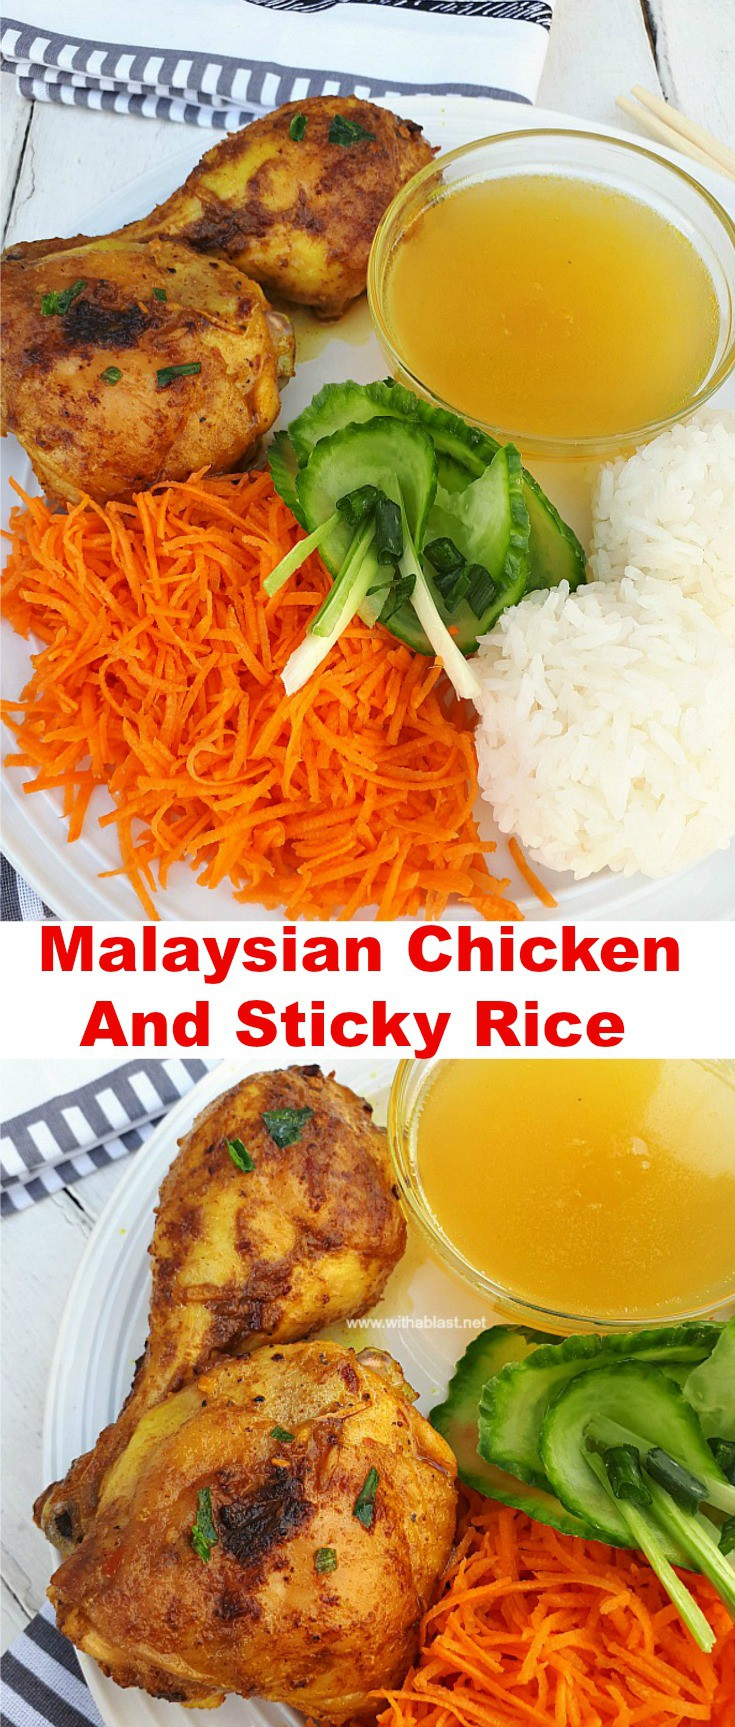 Malaysian Chicken and Sticky Rice